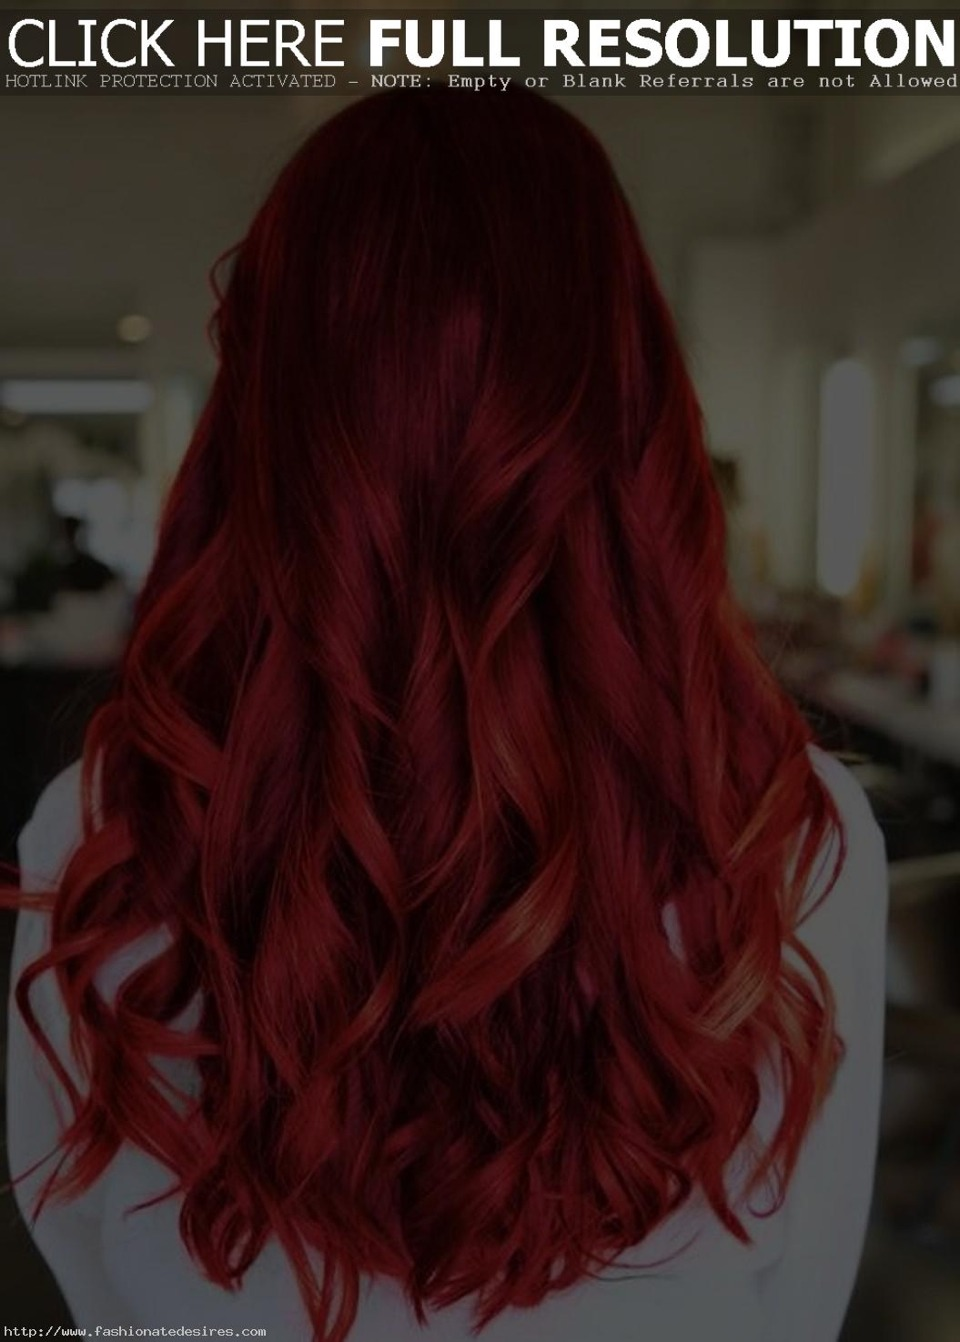 It may look amazing ! But dying your hair can be not only expensive but hair ruining and regretful ! Use a natural one or even better, just honey or lemon to lightly lighten up your hair !